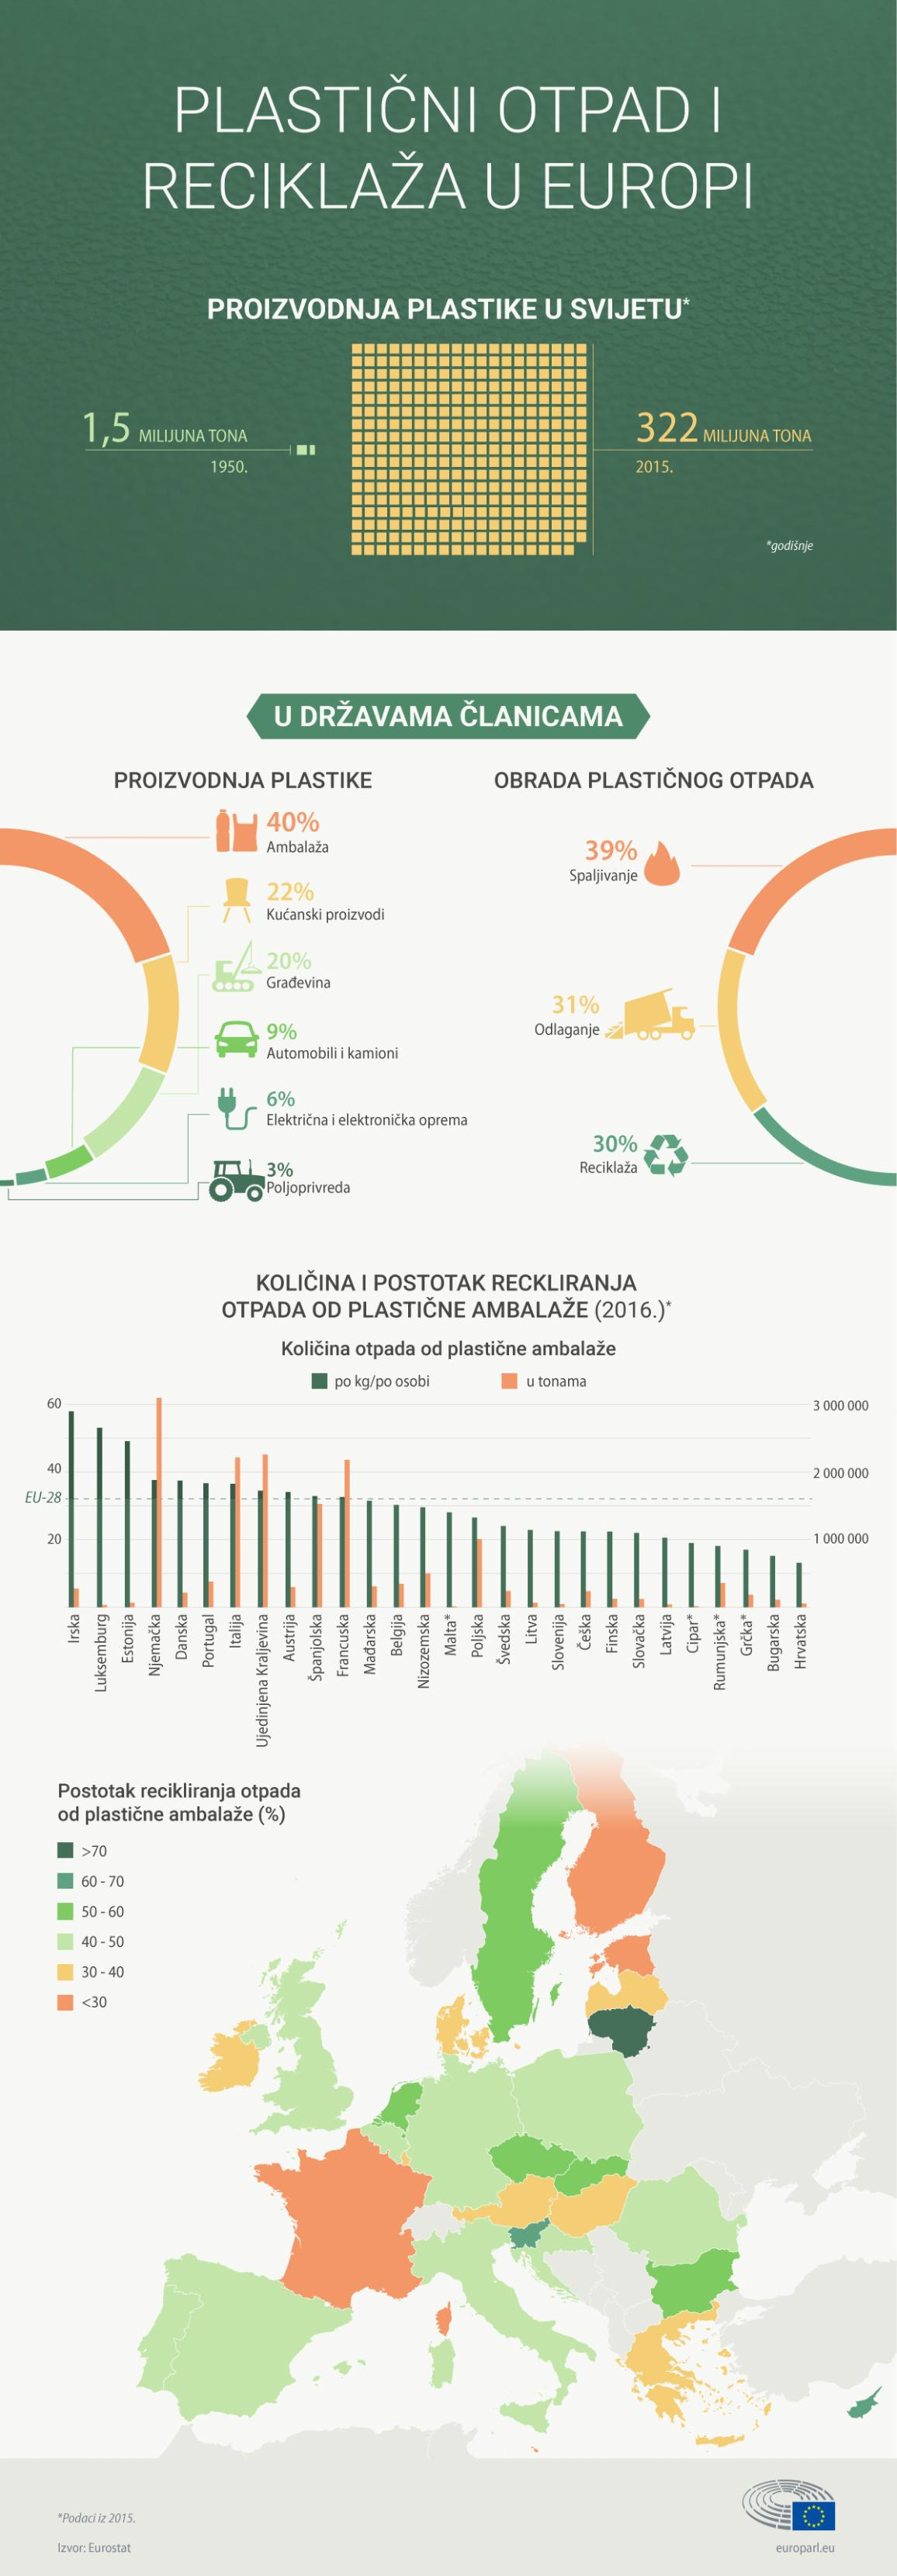 infographie illustration on plastic waste and recycling in the European Union